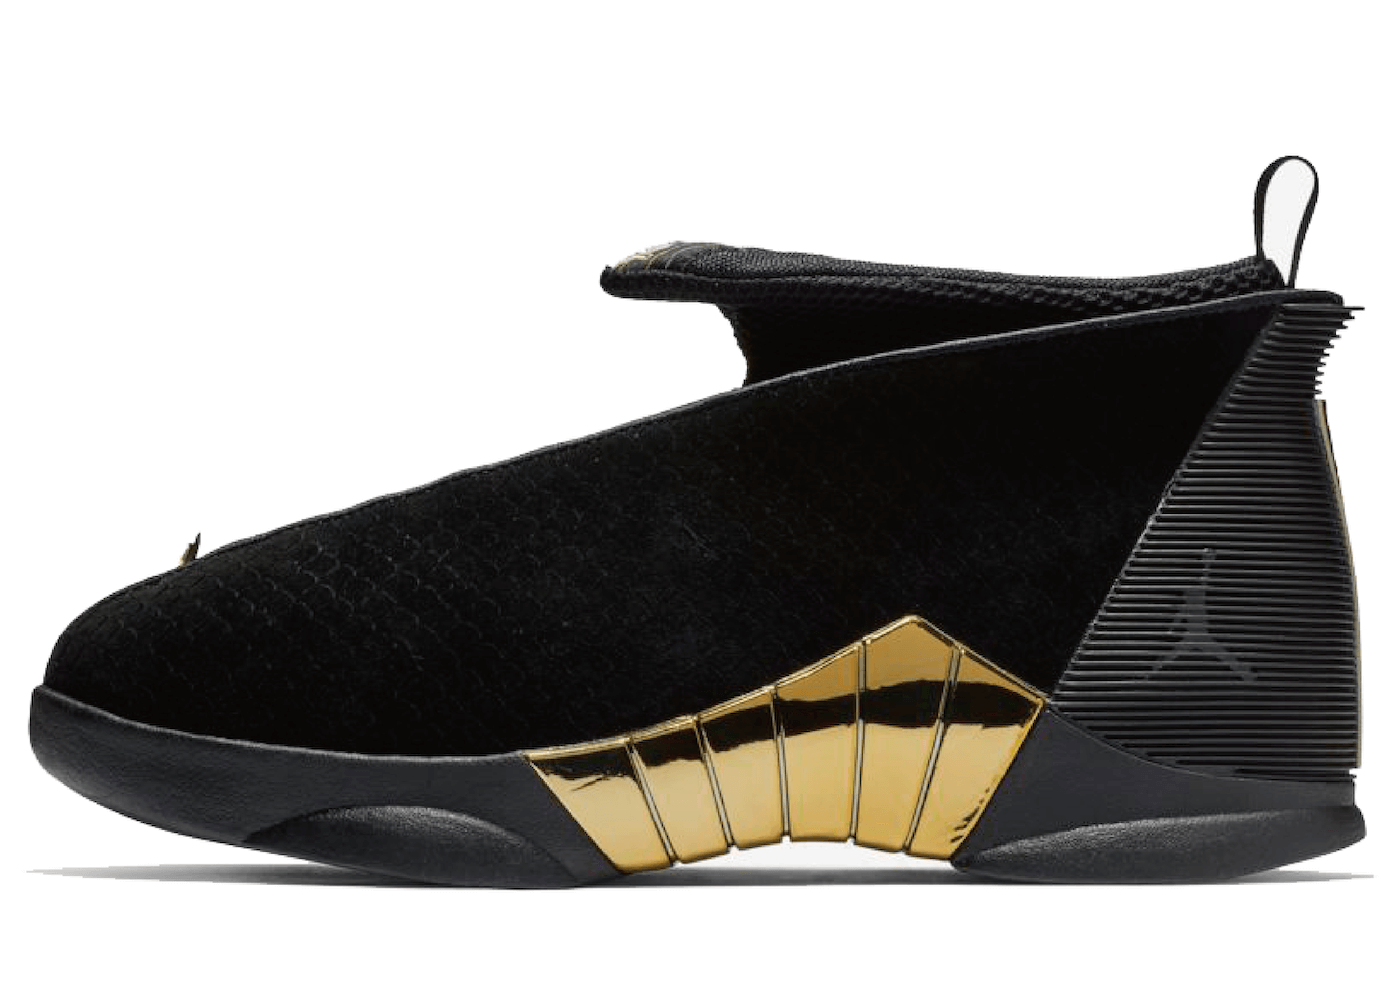 Nike Air Jordan 15 Retro Doernbecher (2018)の写真